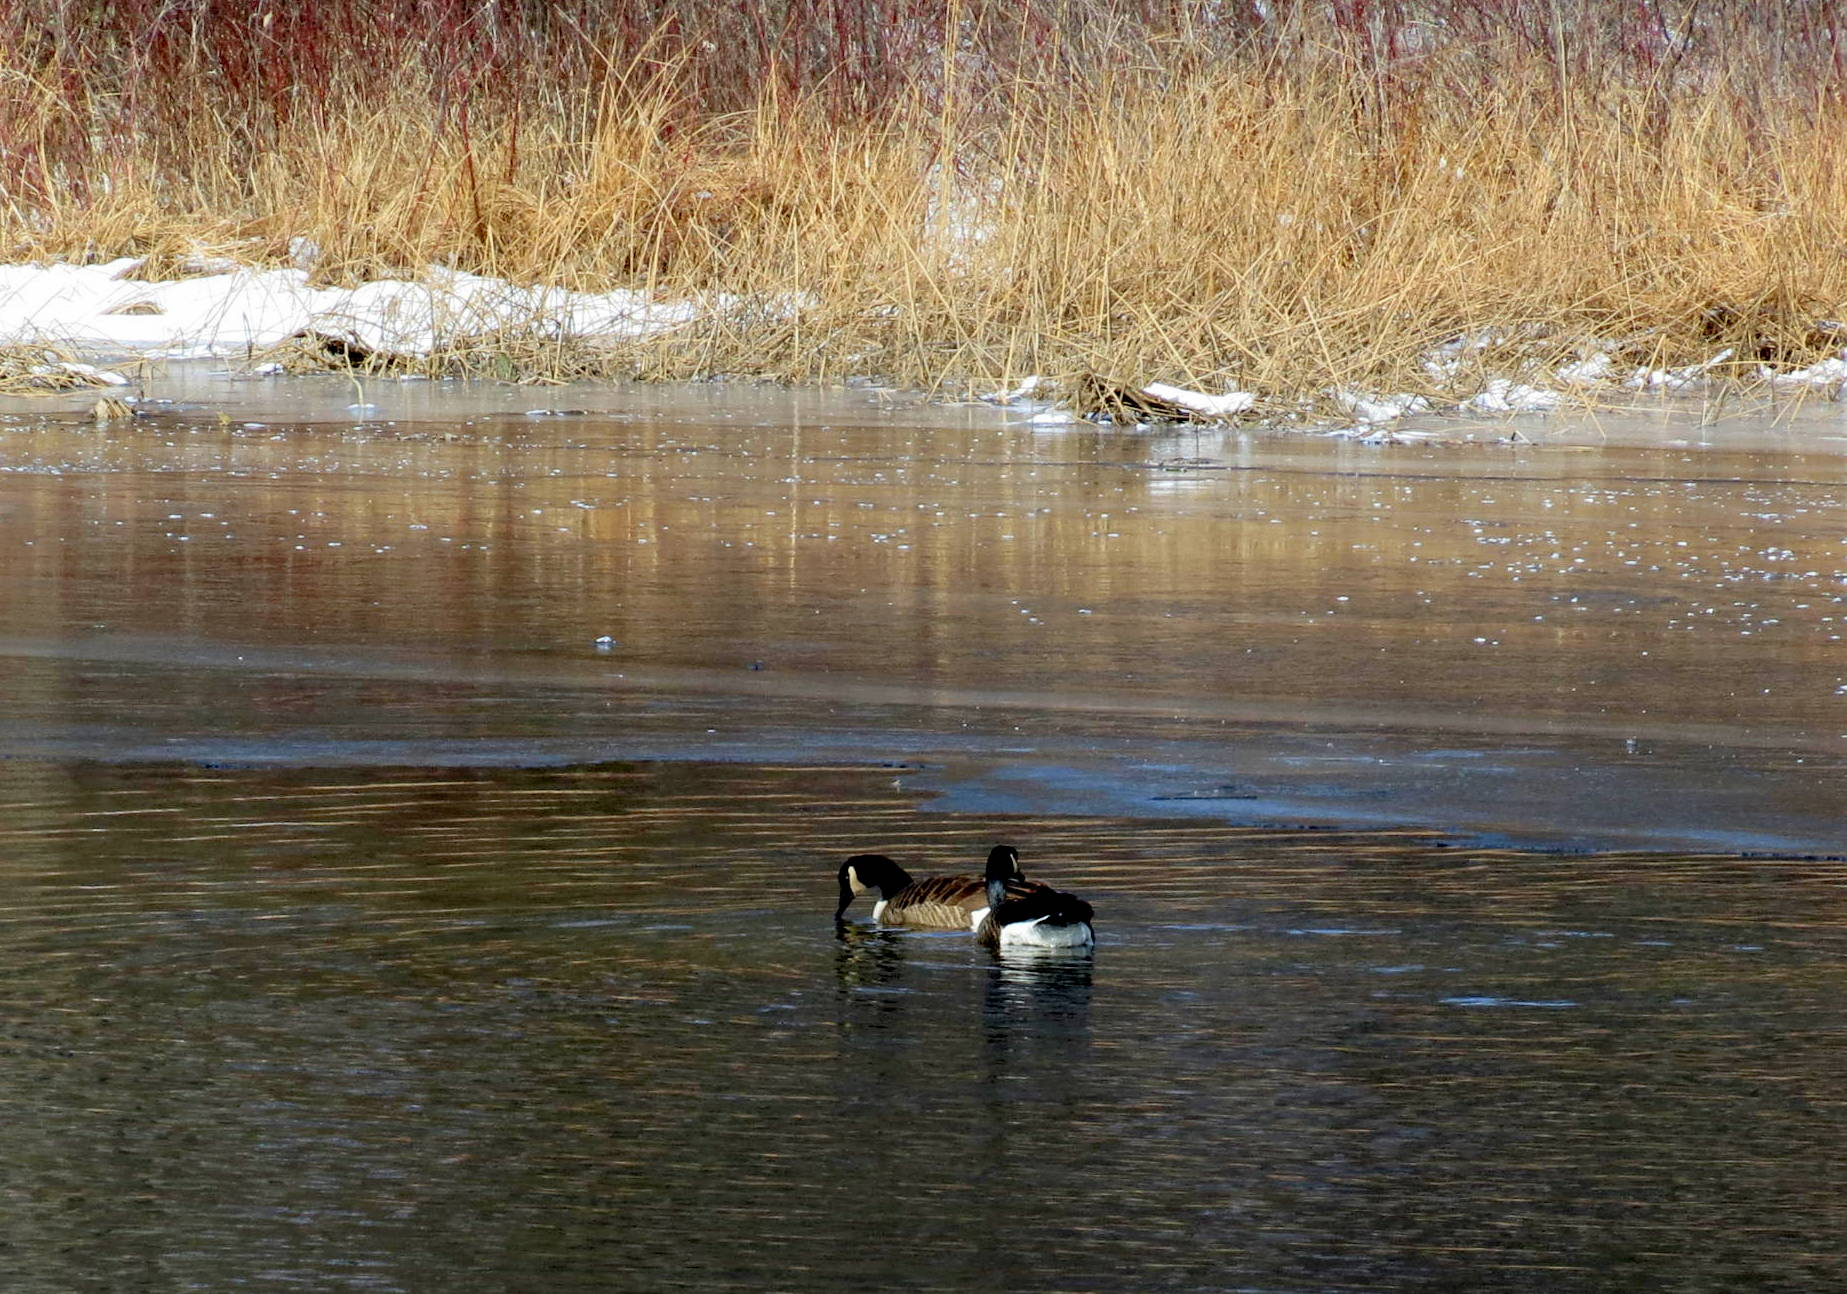 10. Canada Geese